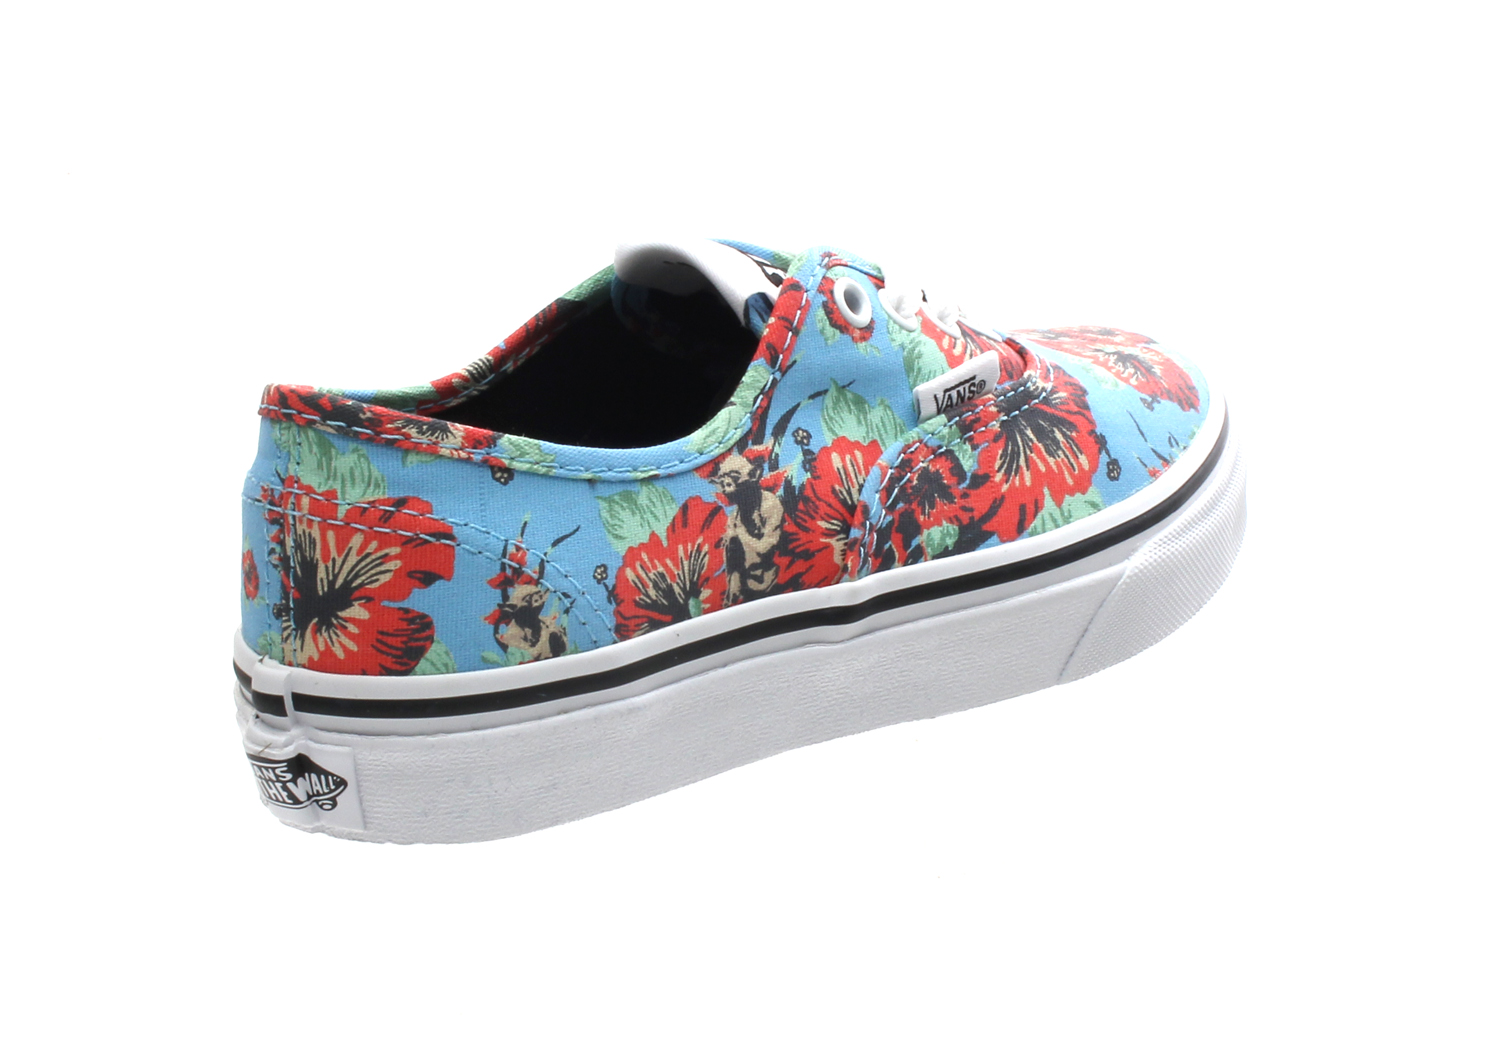 320cd9570a57 Authentic (Star Wars) Yoda Aloha Kids Shoe WWXDJJ